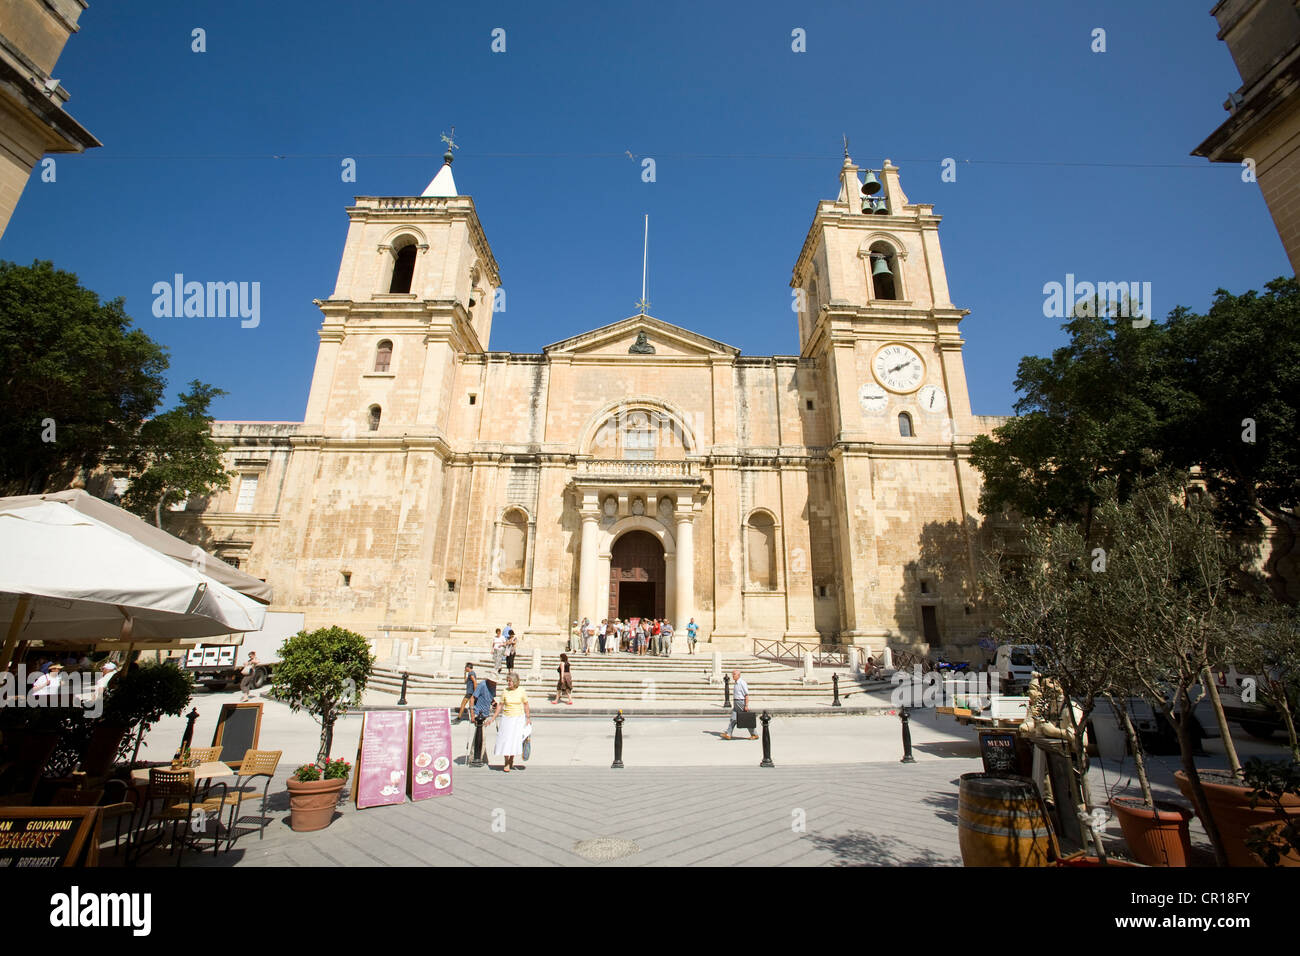 Malta, Valletta, listed as World Heritage by UNESCO, St John's Co-Cathedral - Stock Image